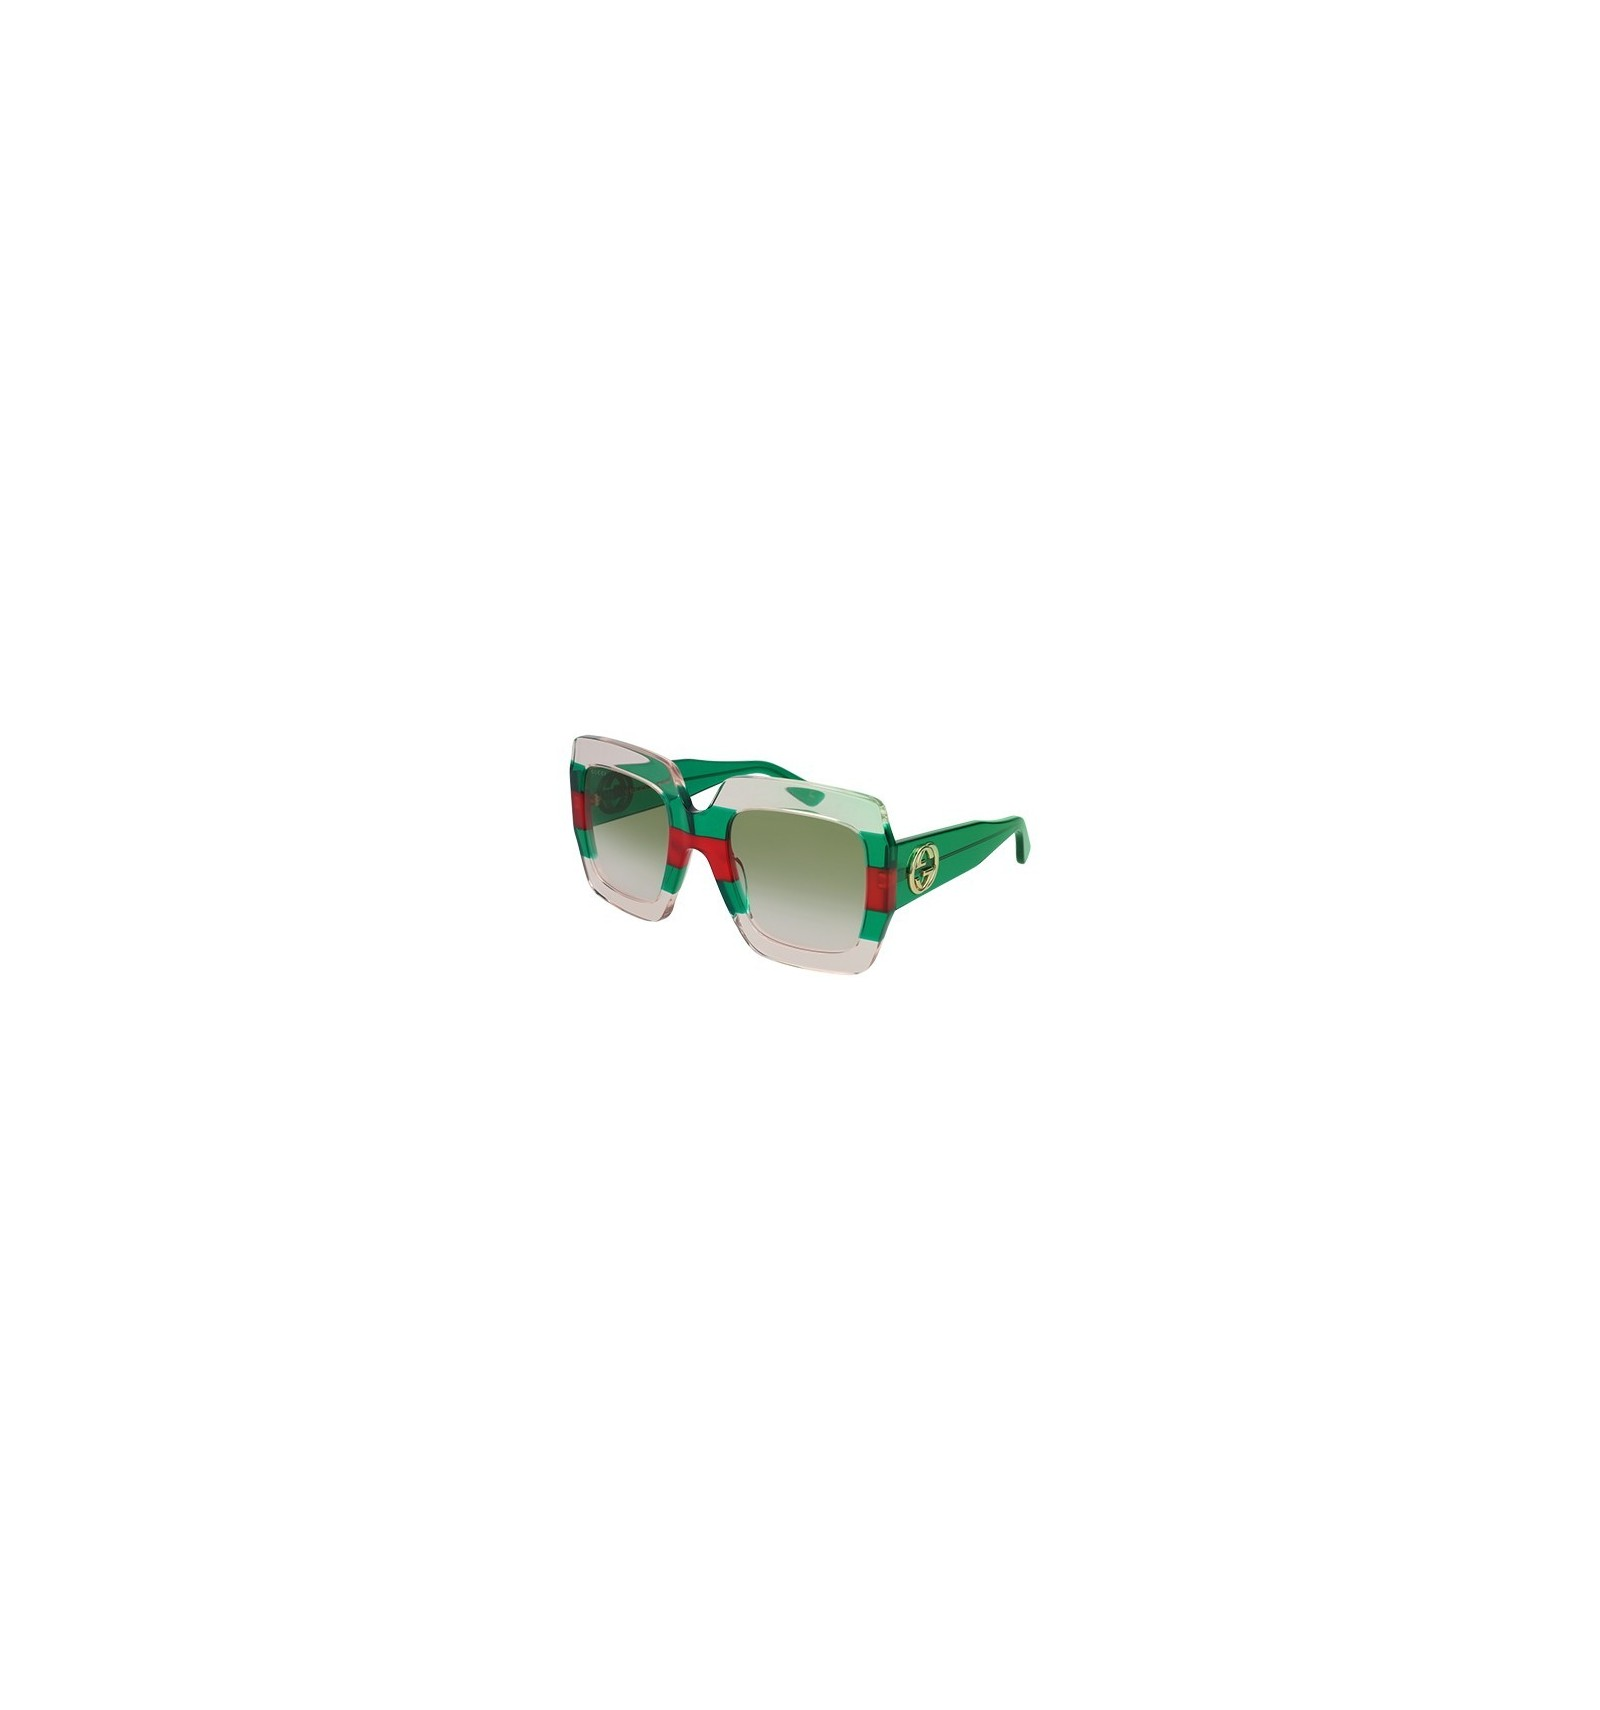 6863a94ef30 Gafas de Sol GUCCI GG0178S White Red striped Green - Green Shaded (001)